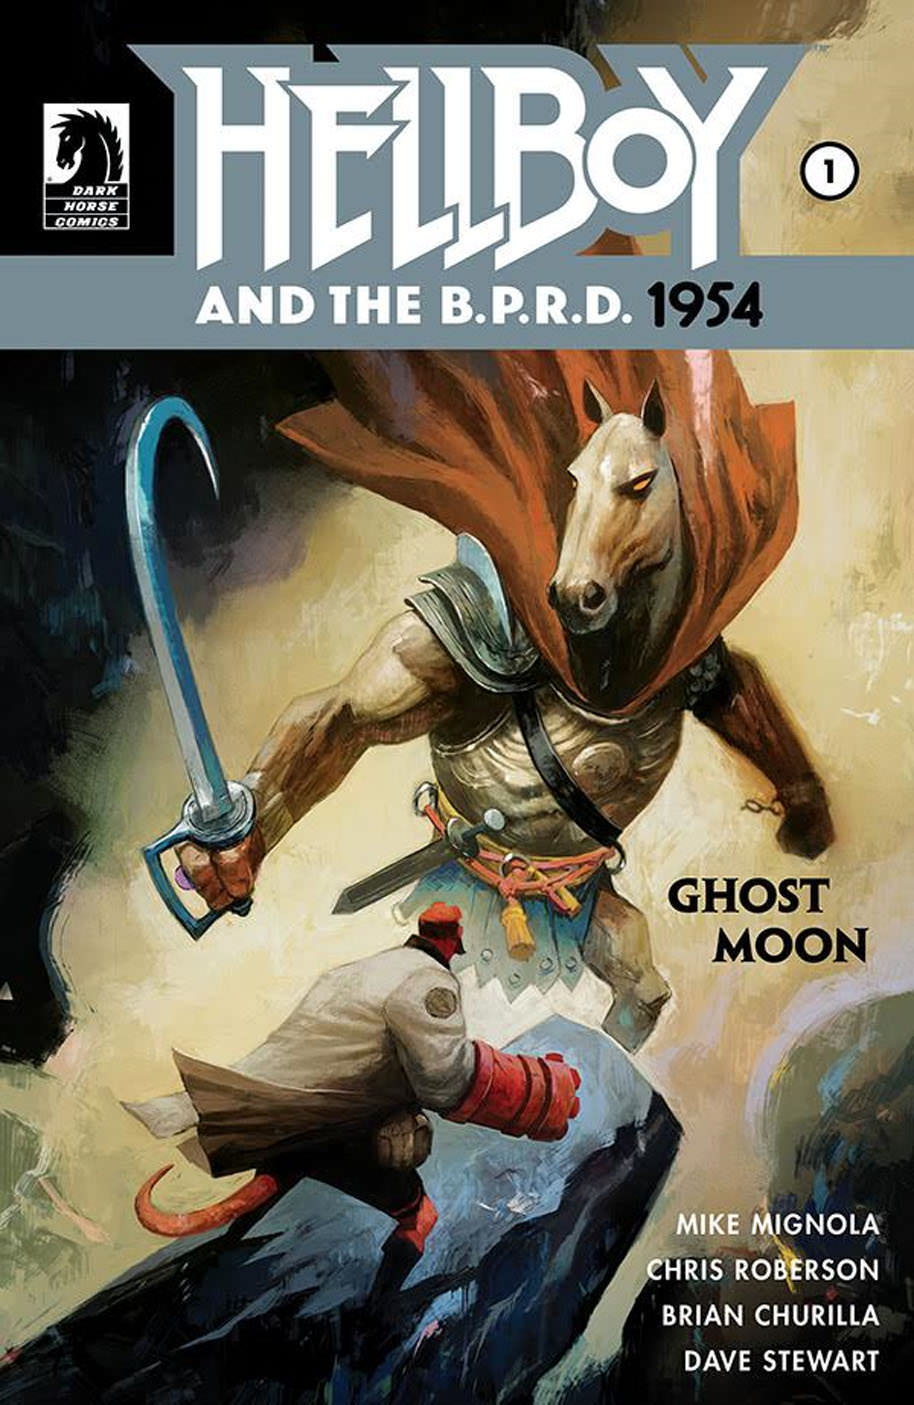 hellboy-and-bprd-1954-1-cover